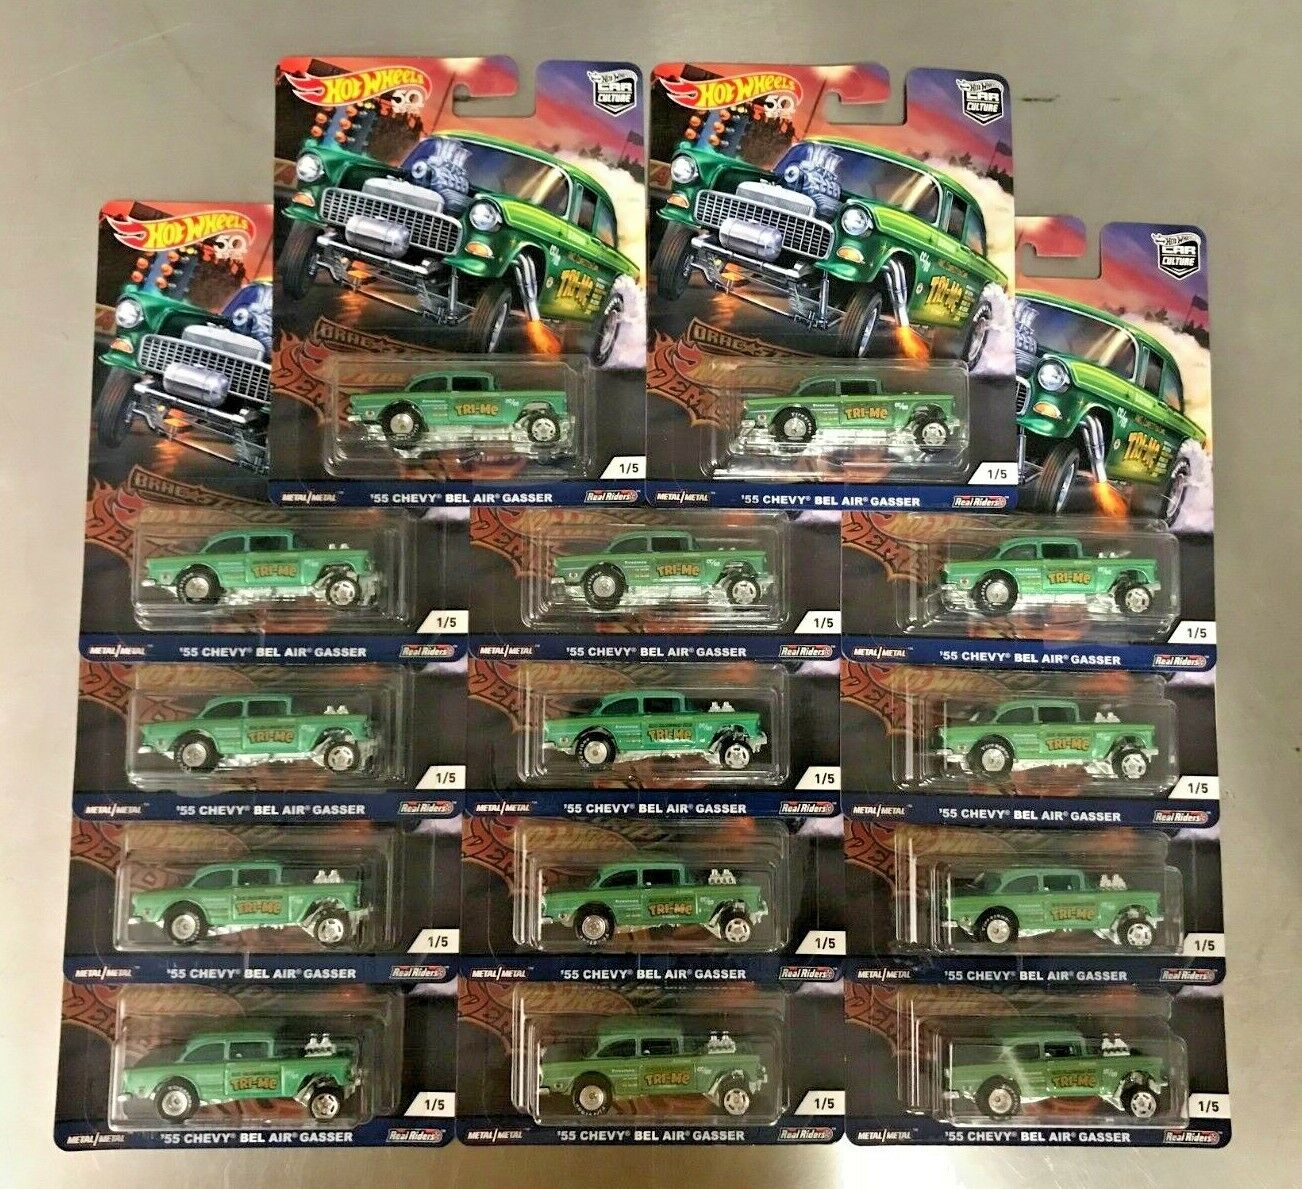 New LOT of 14 Hot Wheels Drag Strip Demons '55 Chevy Bel Air Gasser Muscle Rare